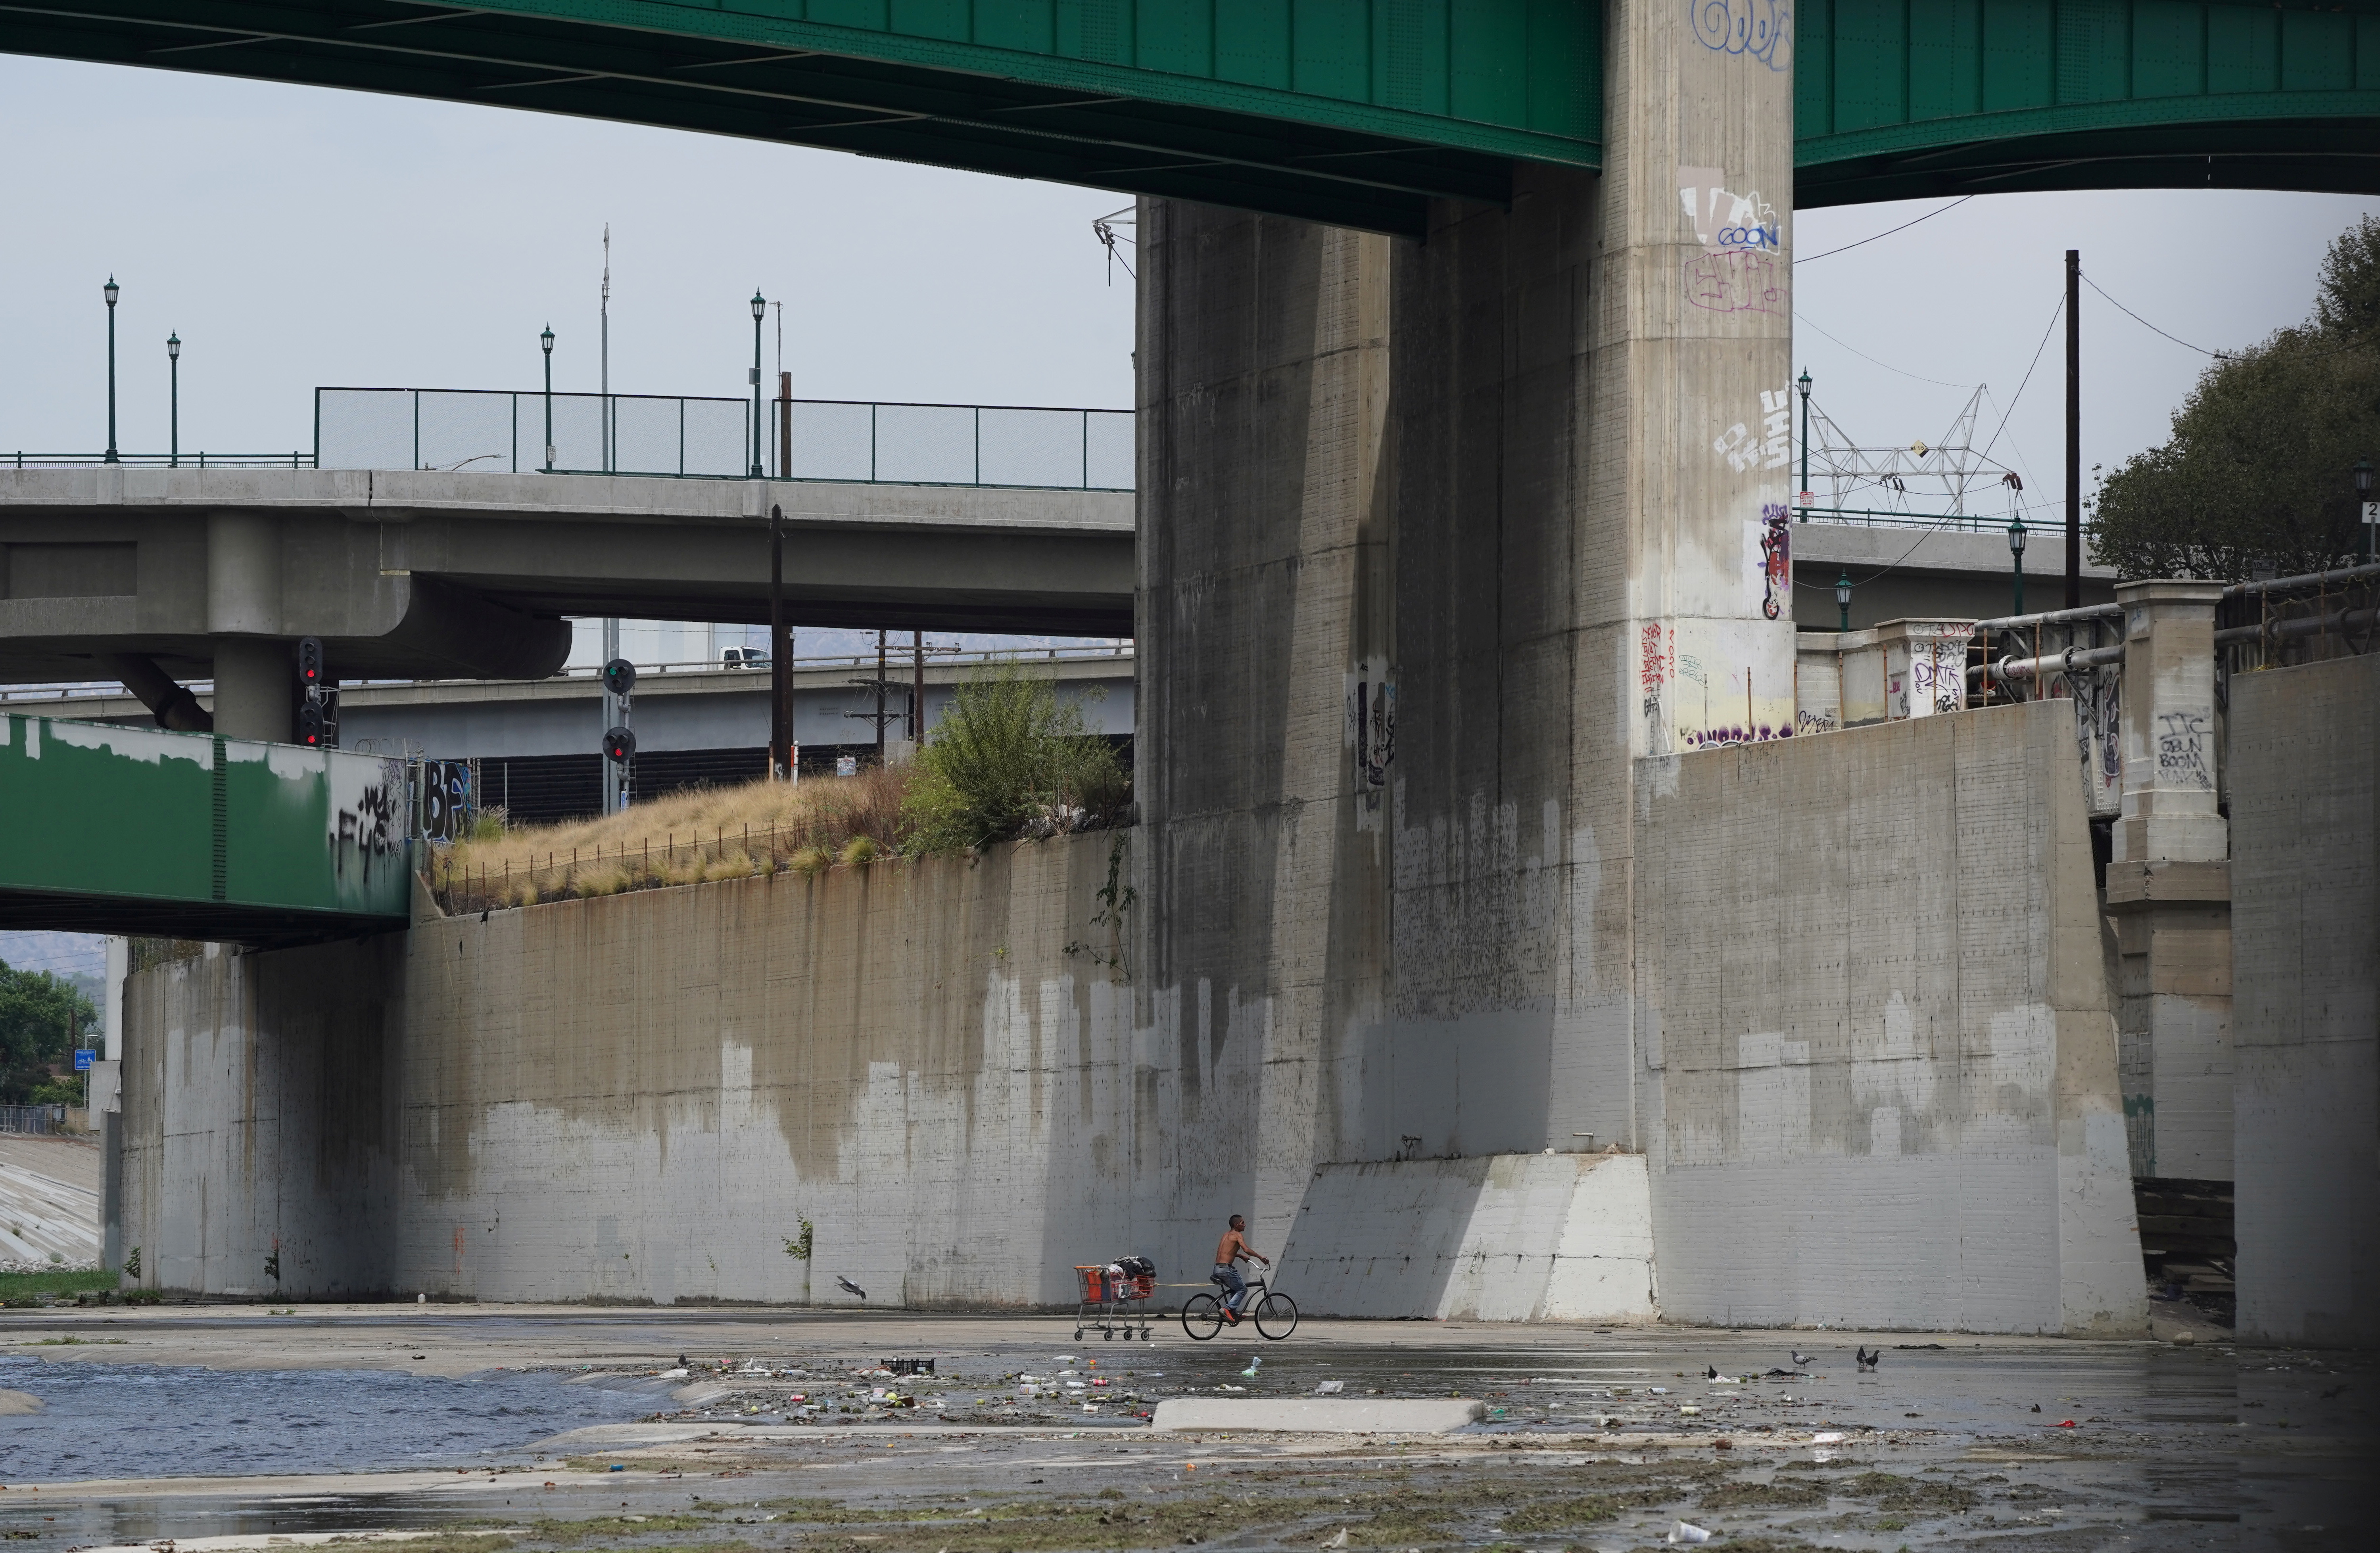 A man experiencing homelessness pulls a shopping cart on his bicycle in the Los Angeles River in Los Angeles, California, U.S. August 11, 2021. REUTERS/Bing Guan